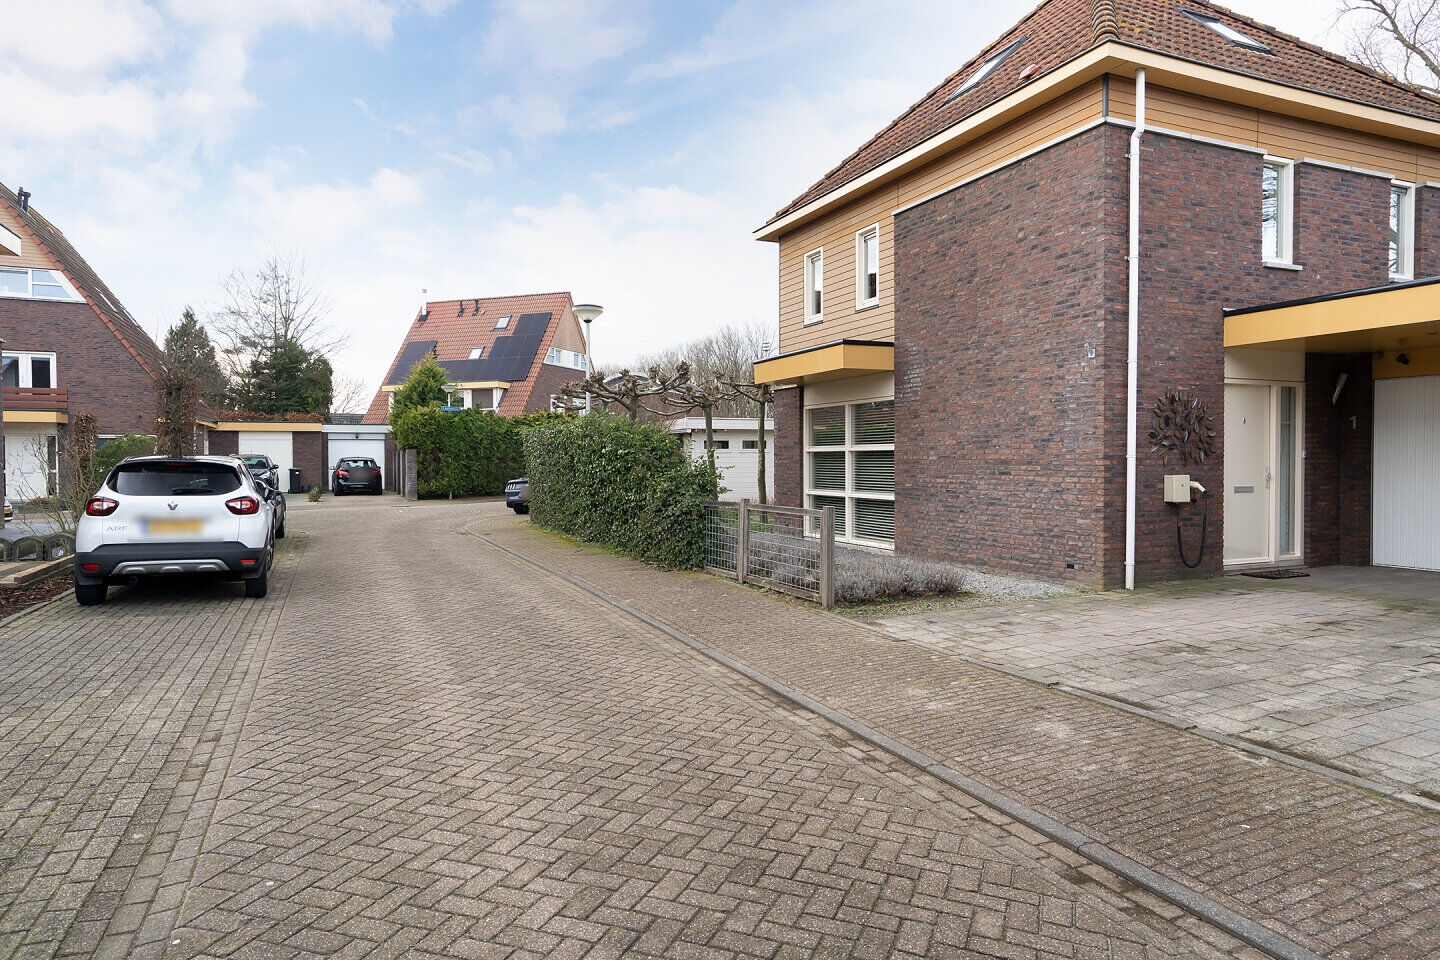 37157-jan_de_preestraat_1-steenbergen-4058707179